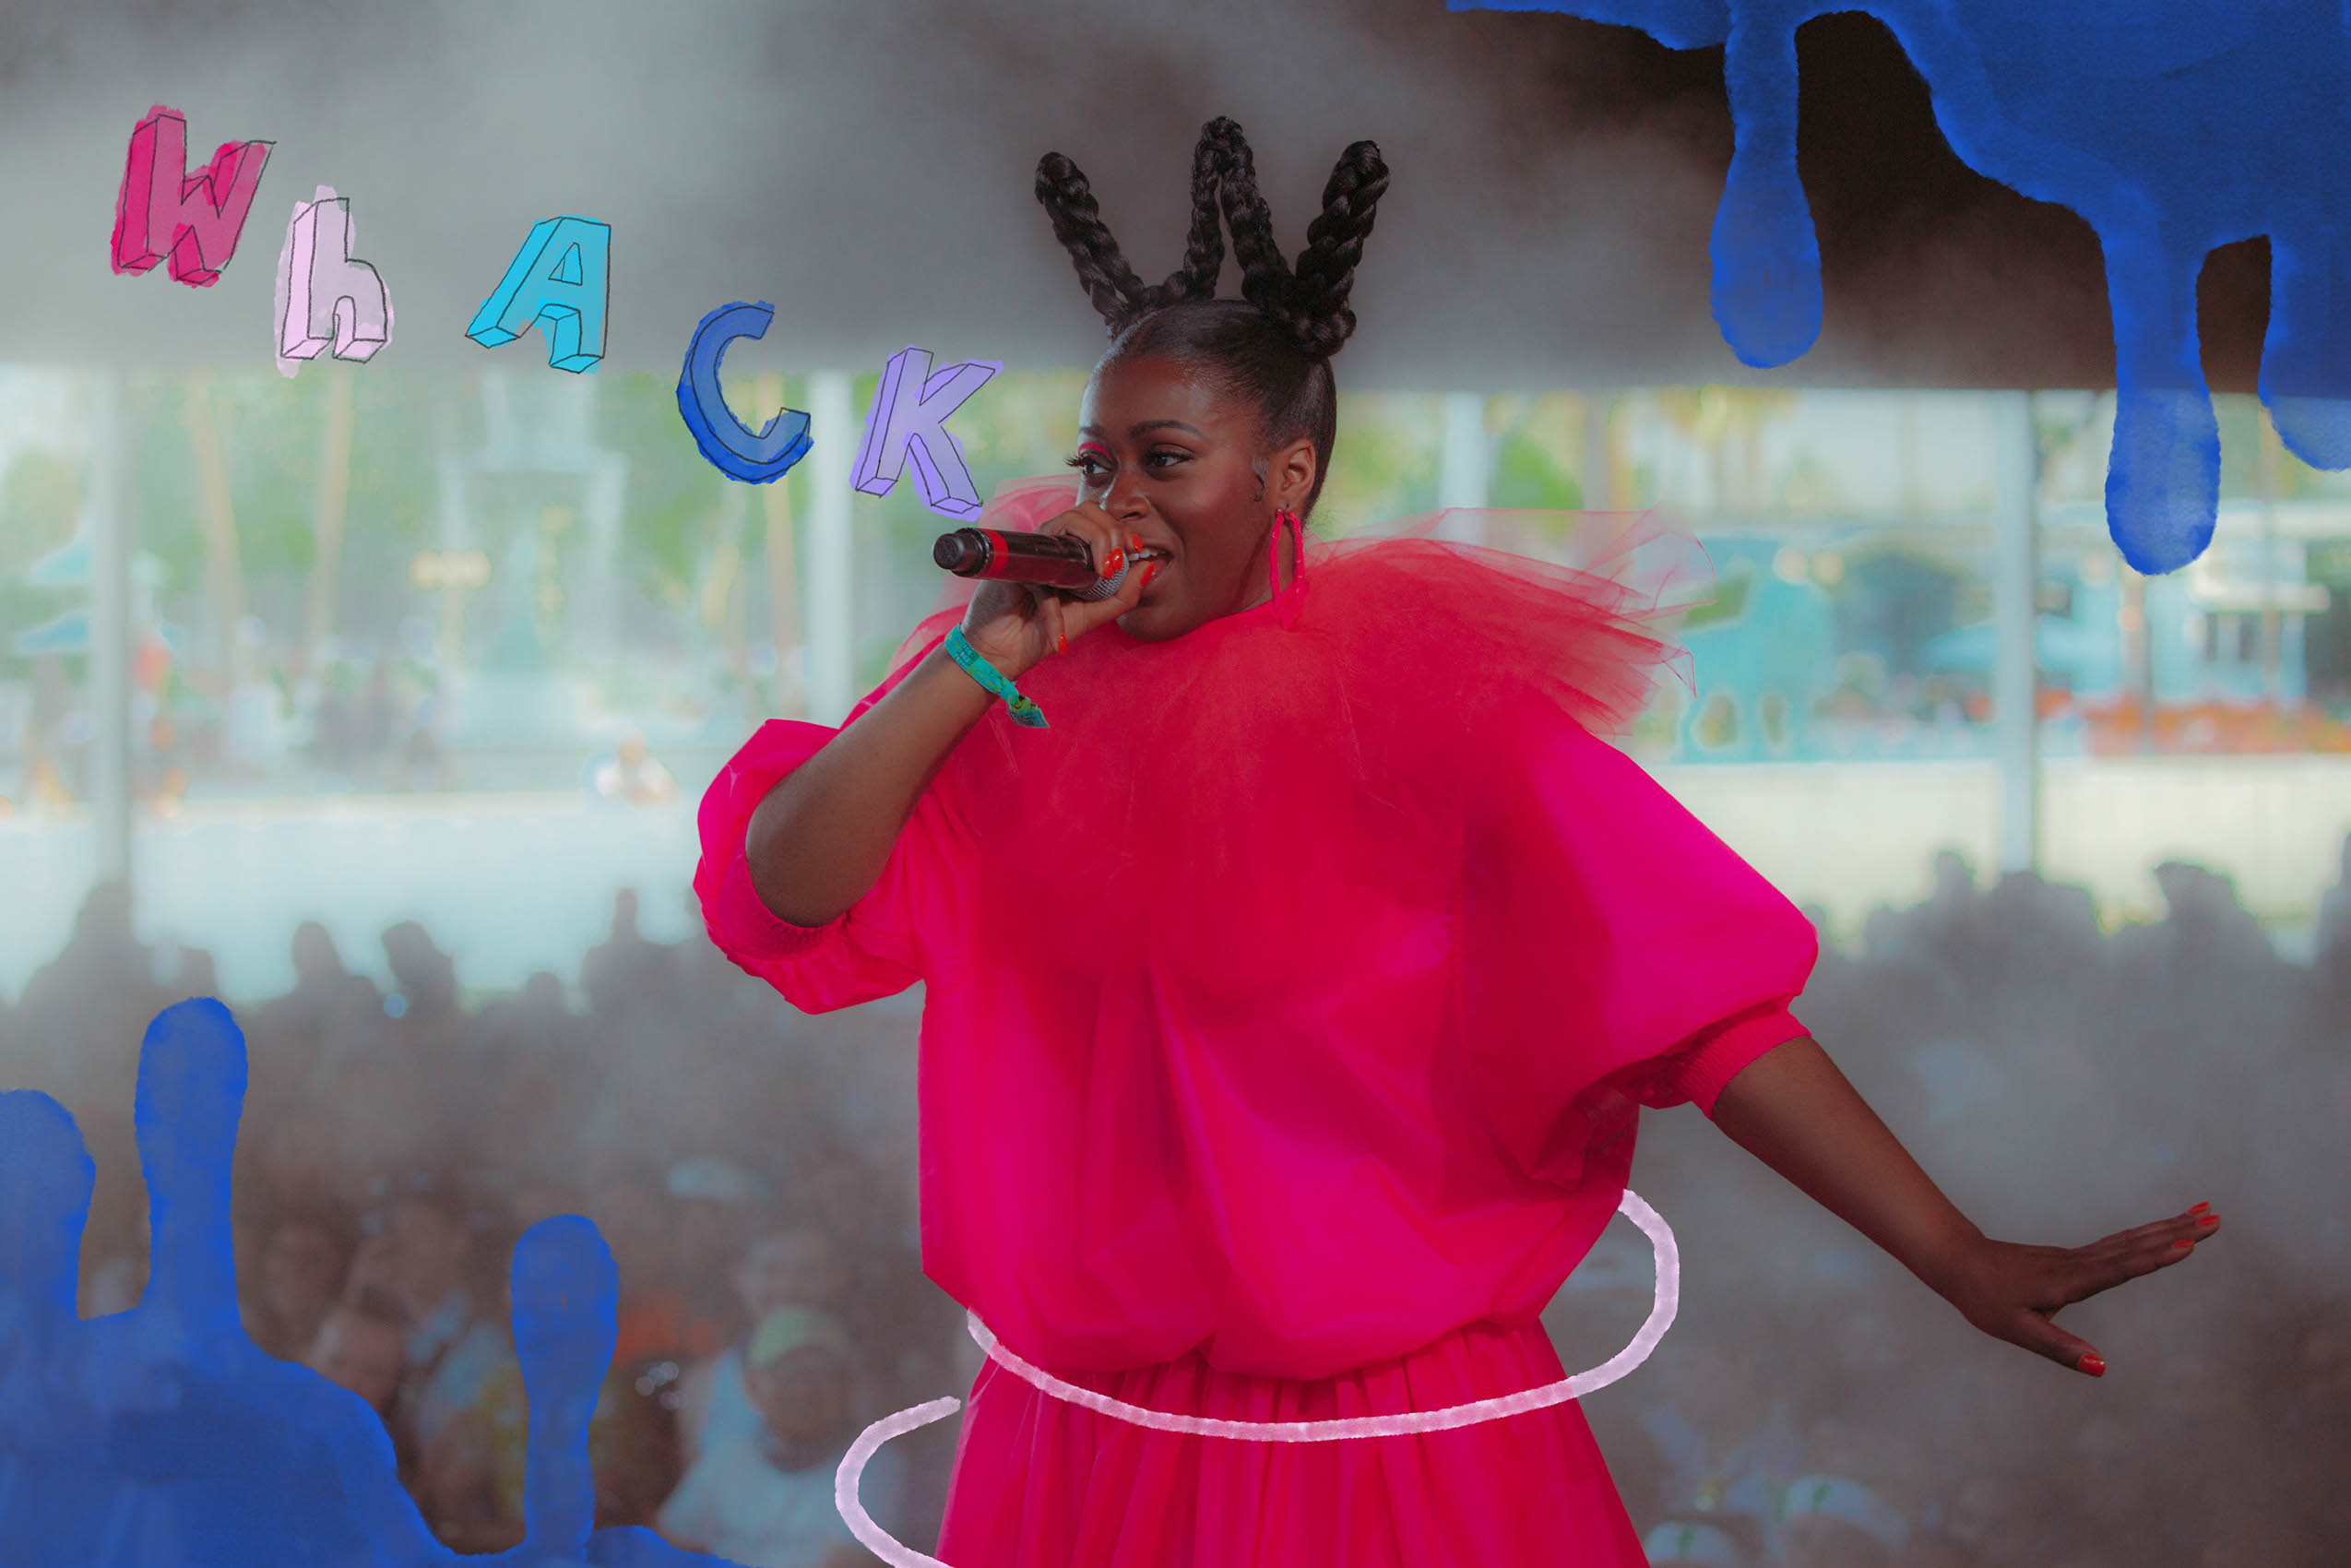 Coachella2019_W2_303498_graphics